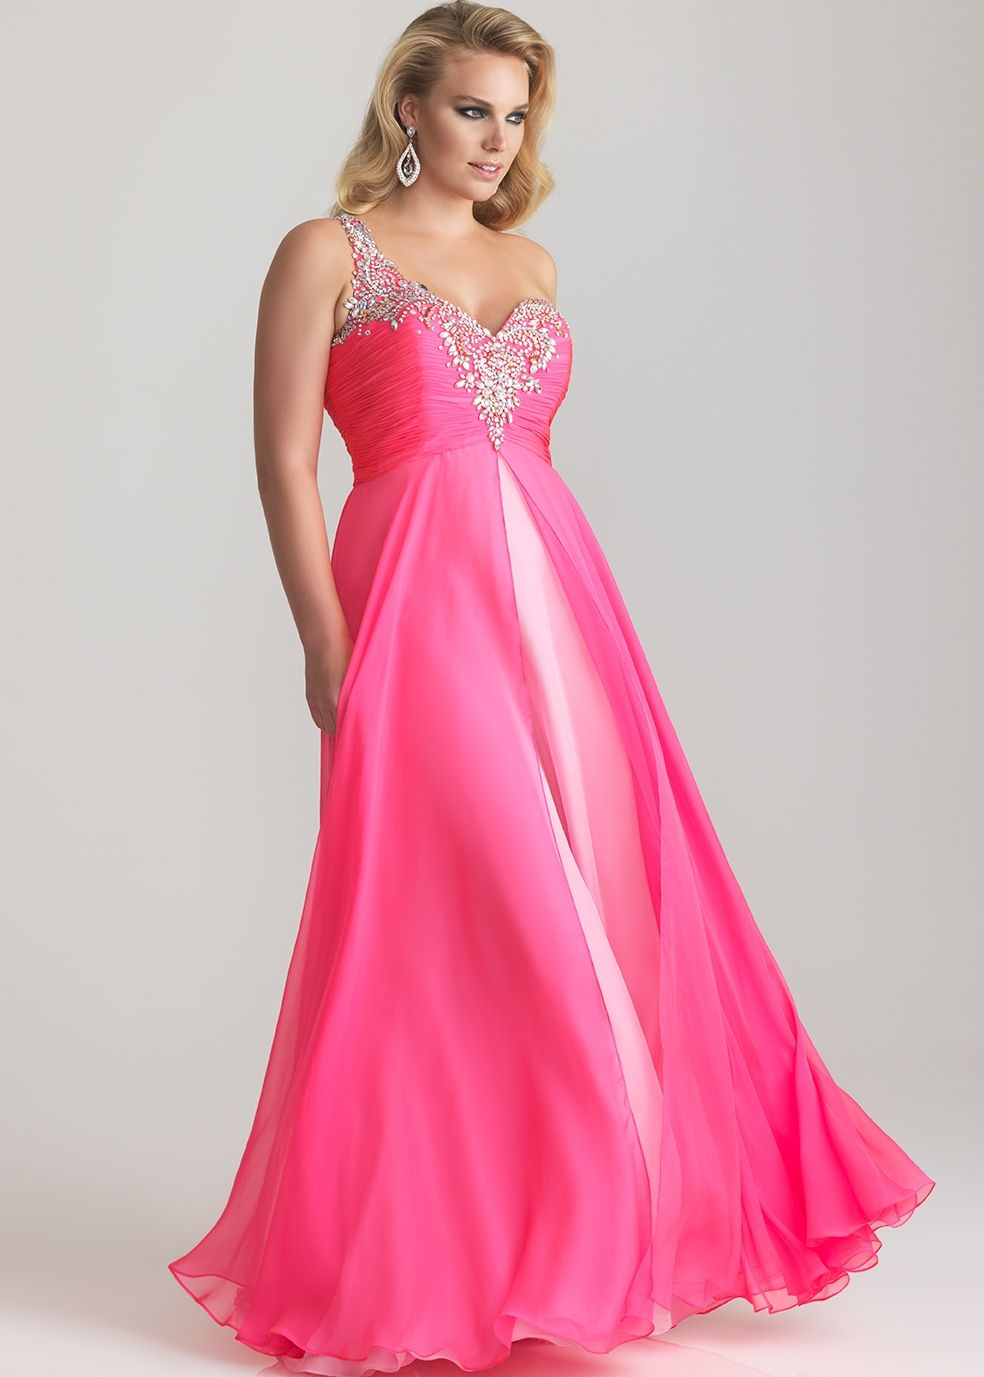 Fashion Choice Of Pink Plus Size Wedding Dresses Photo Album ...